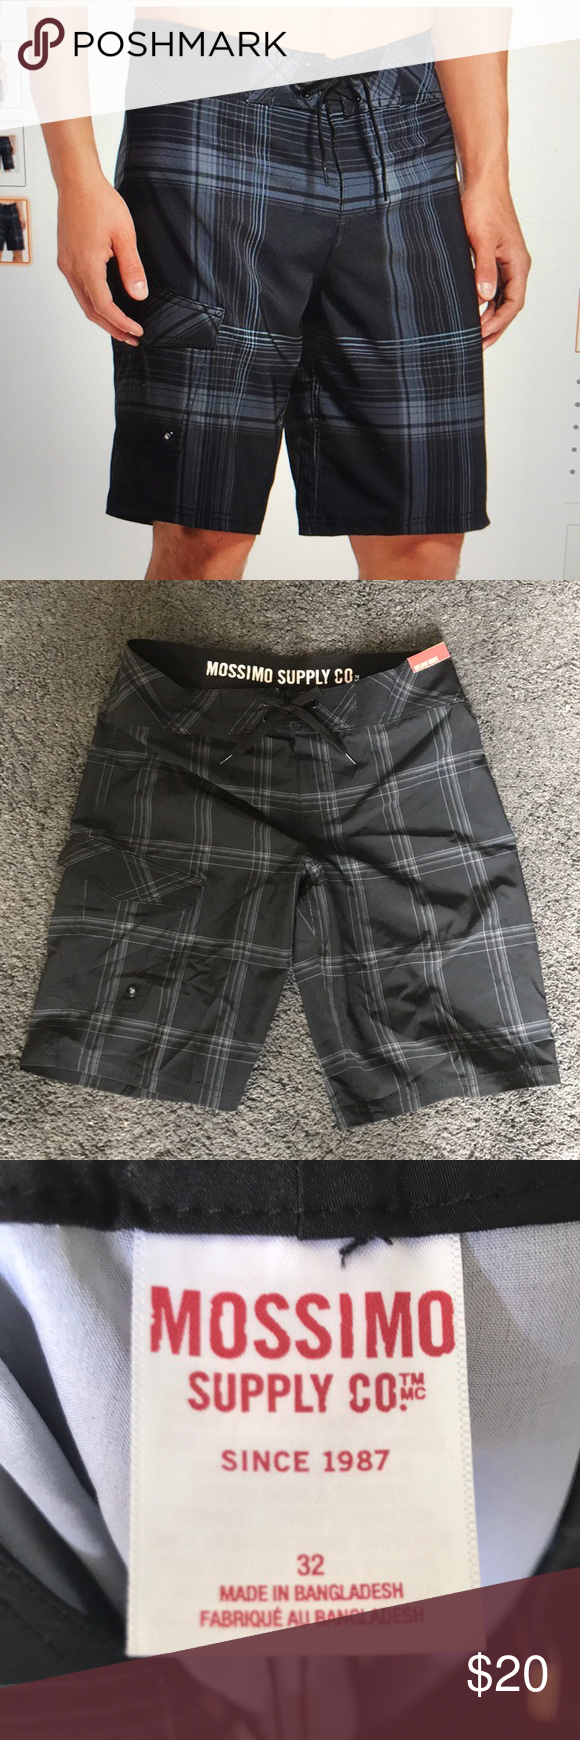 f3deb8d37a Mossimo Supply Co Size 32 Below Knee Men's Swim NWOT Mossimo Supply Men's Swim  Trunks Size 32 Waist Below Knee Perfect condition Mossimo Supply Co.